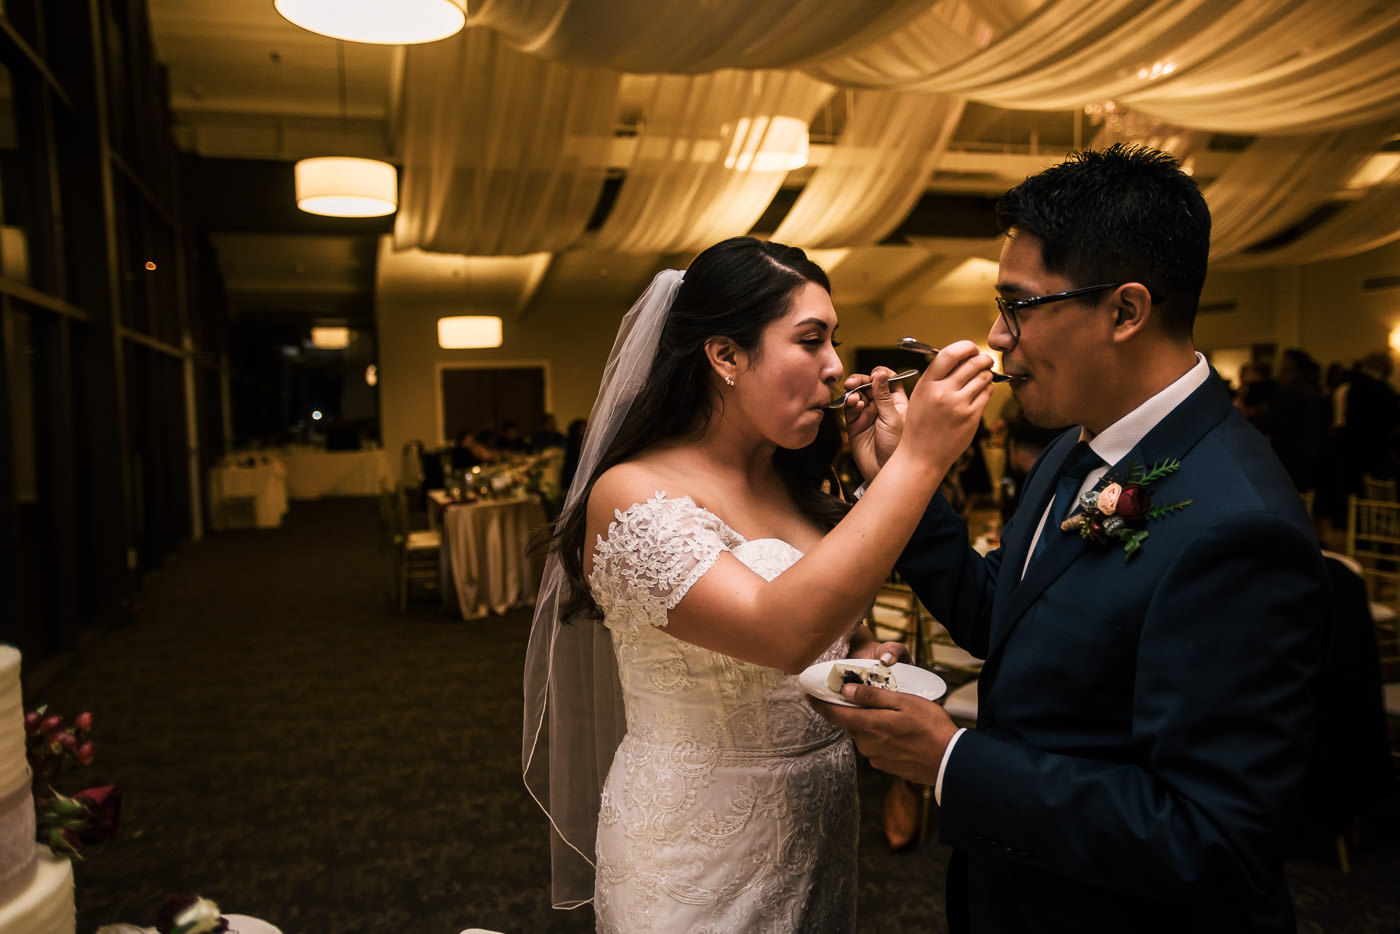 Bride and groom feed each other cake at their reception.